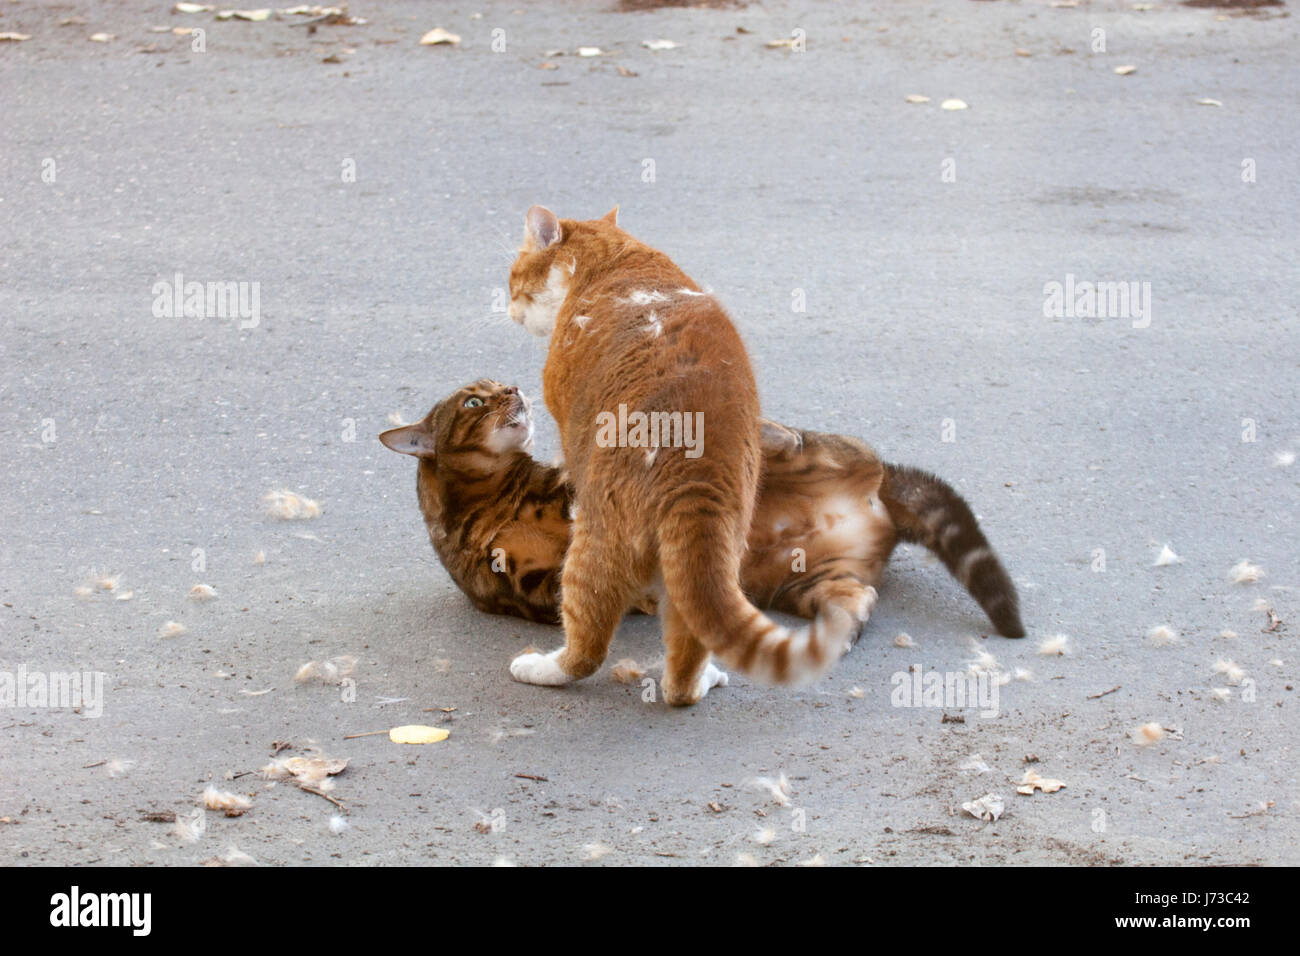 Domestic cats fighting outdoors on the street - Stock Image